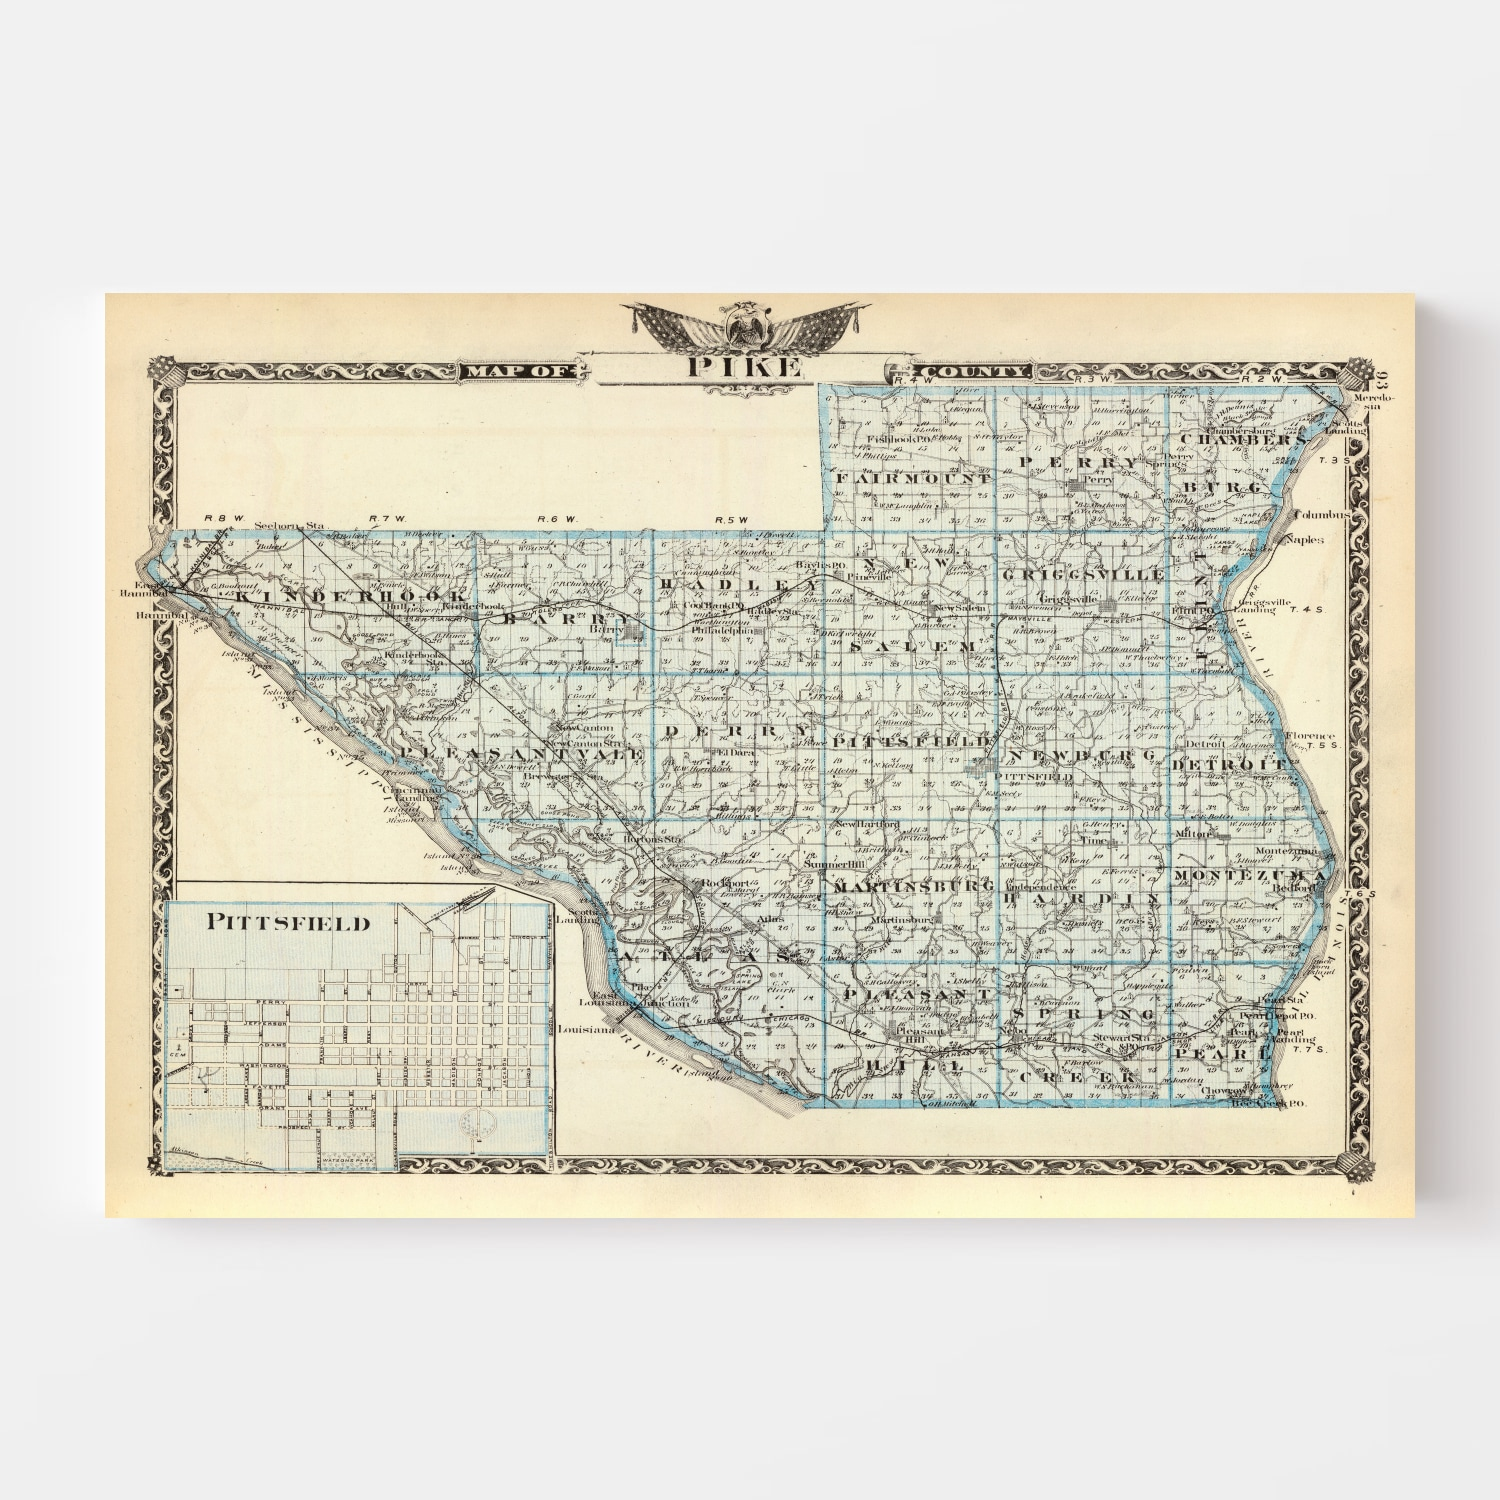 Vintage Map of Pike County Illinois, 1876